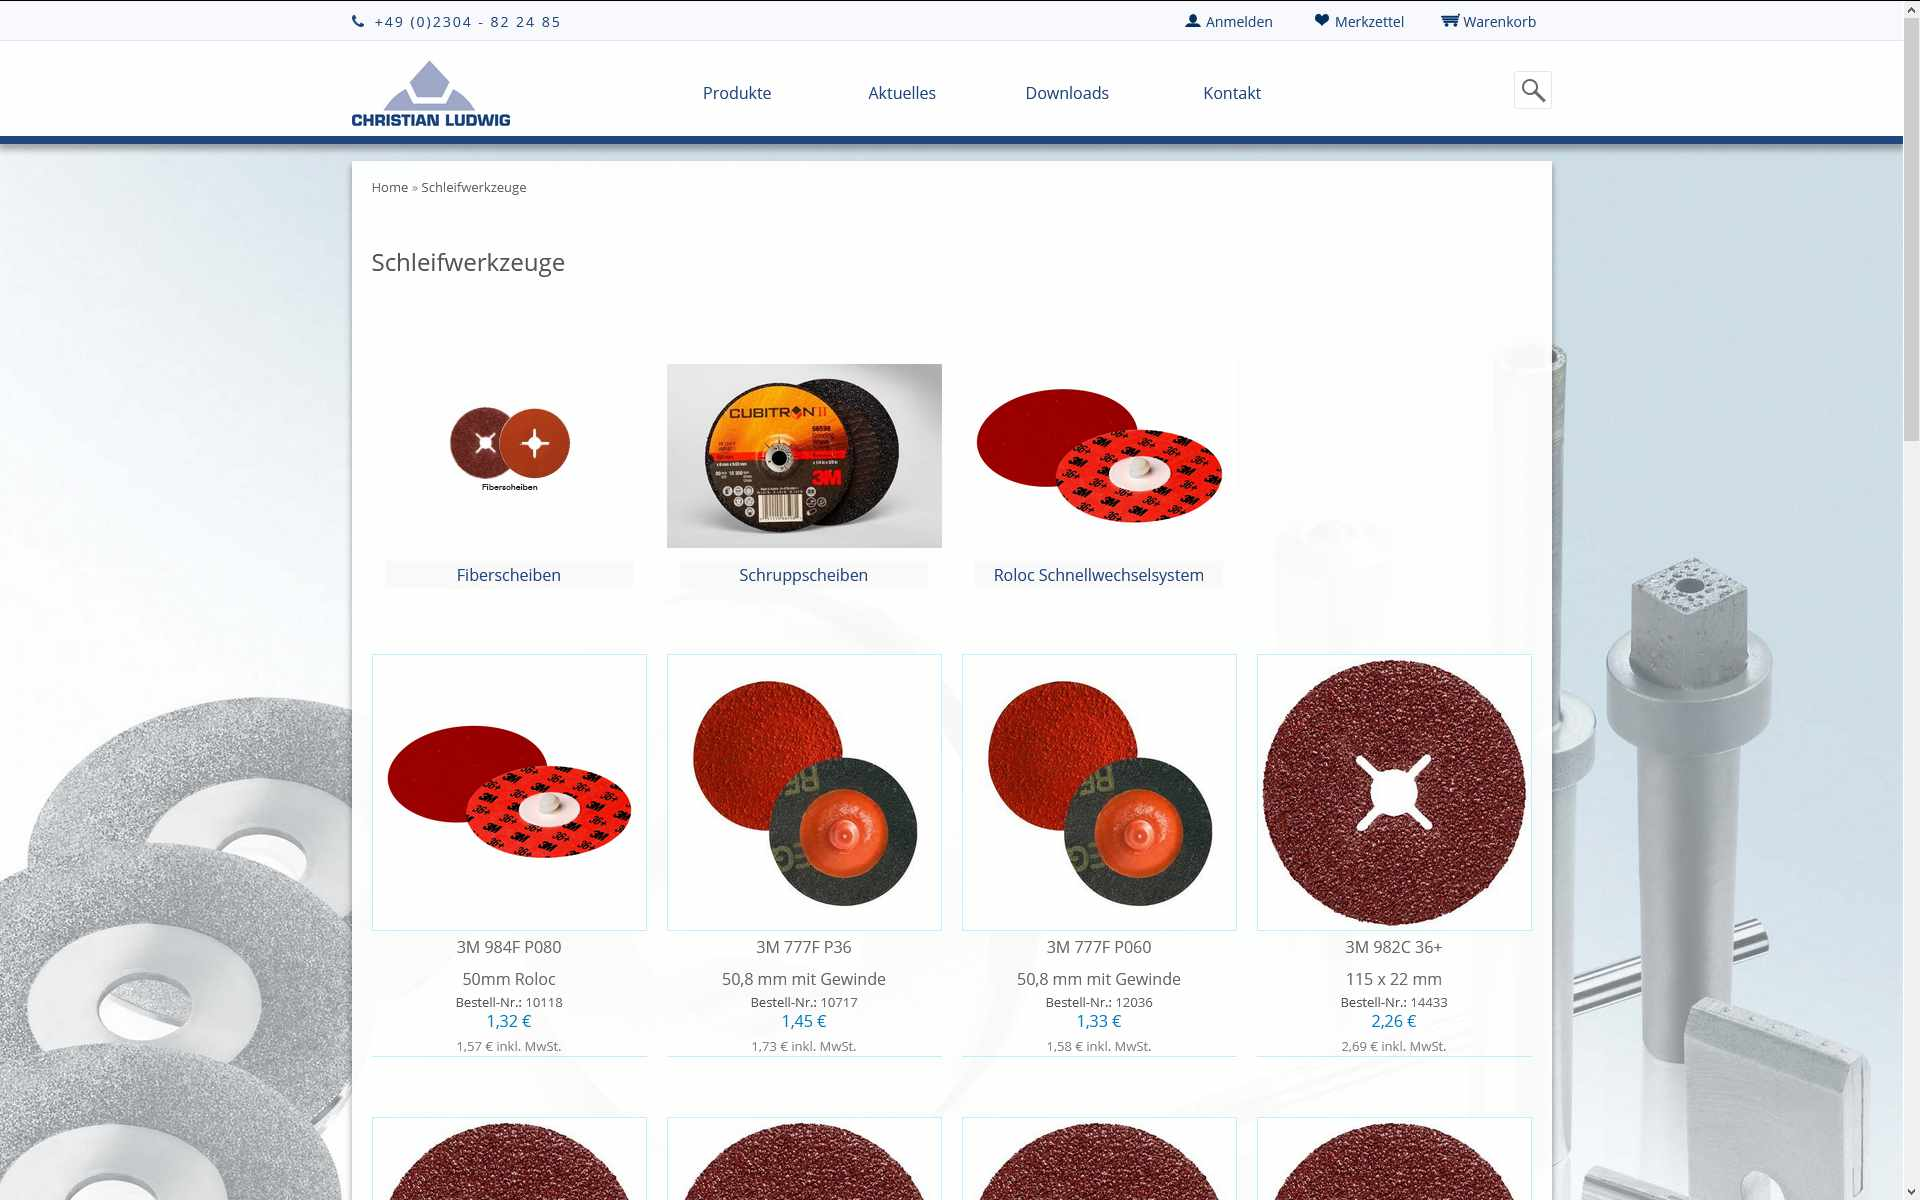 Onlineshop und Website der Christian Ludwig & Co. GmbH